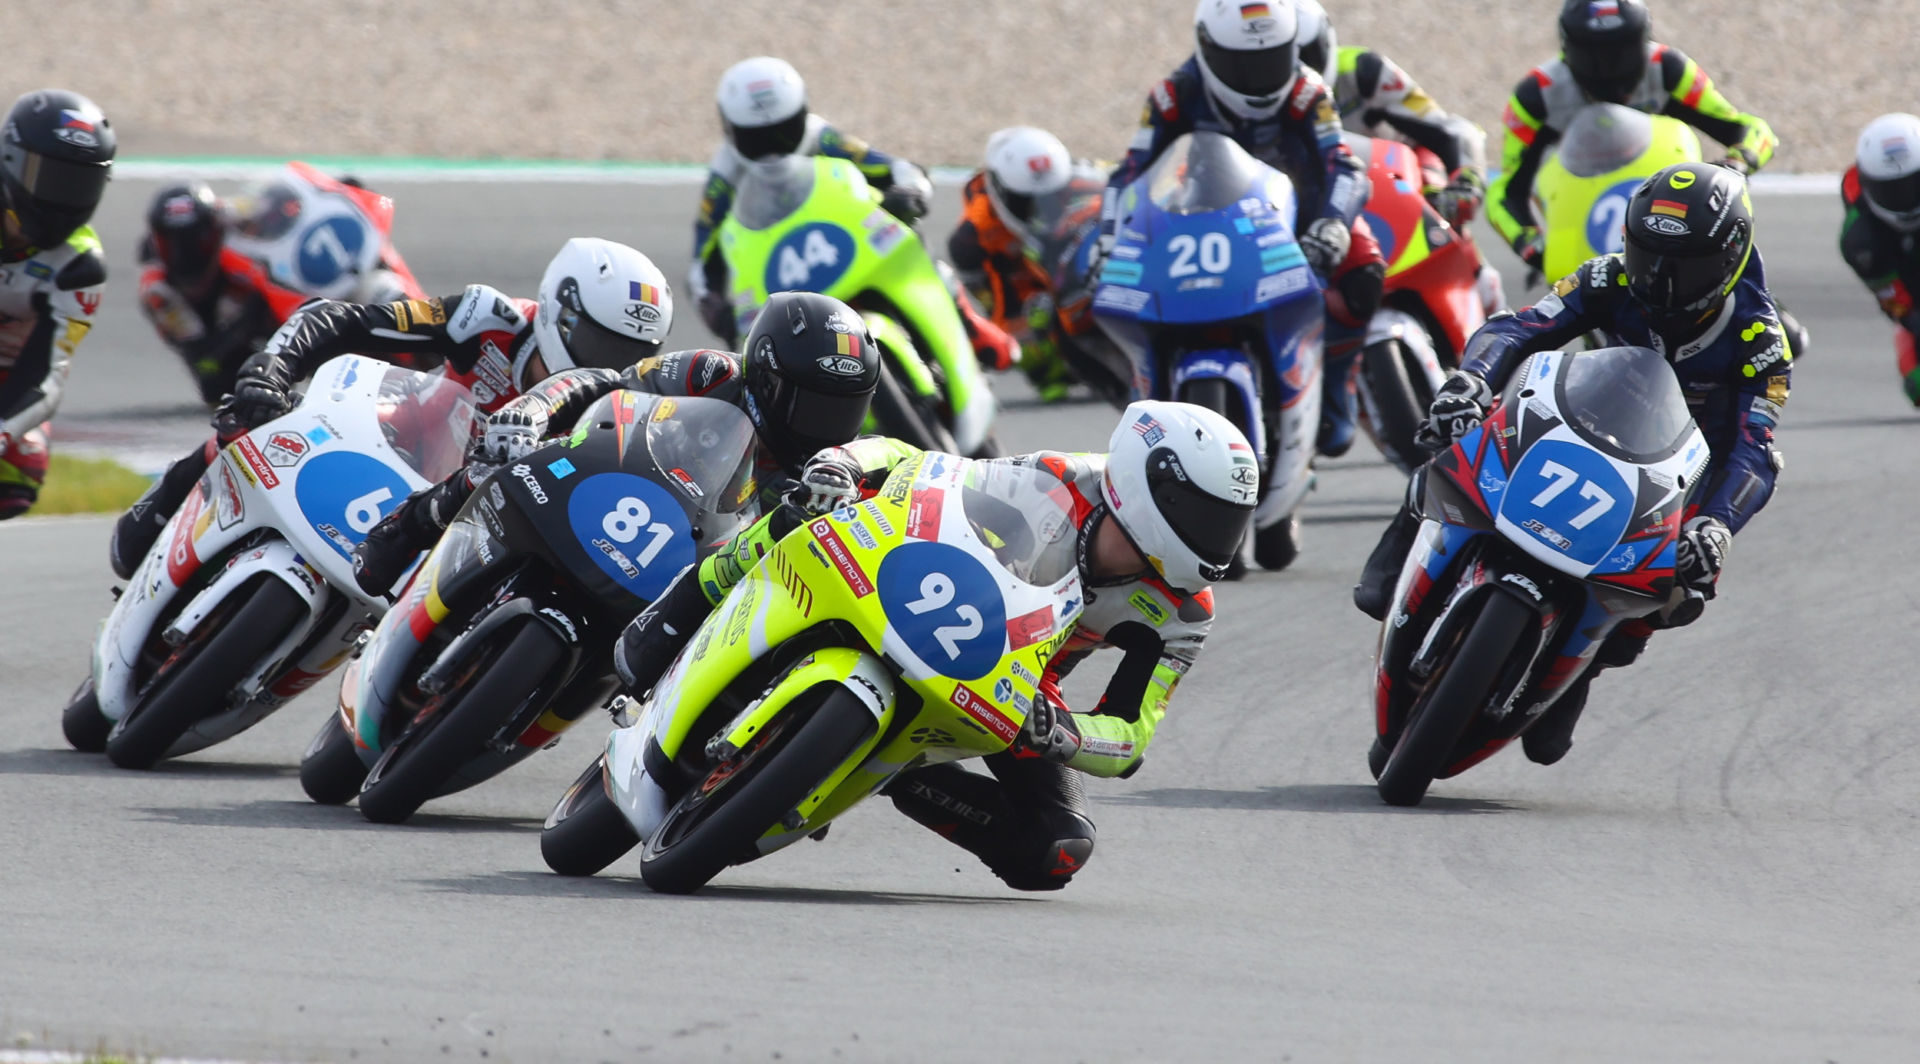 Hungarian-American Rossi Moor (92) leads Lorenz Luciano (81) and the rest of the Northern Talent Cup Field during Race One at Red Bull Ring, in Austria. Photo courtesy Dorna.